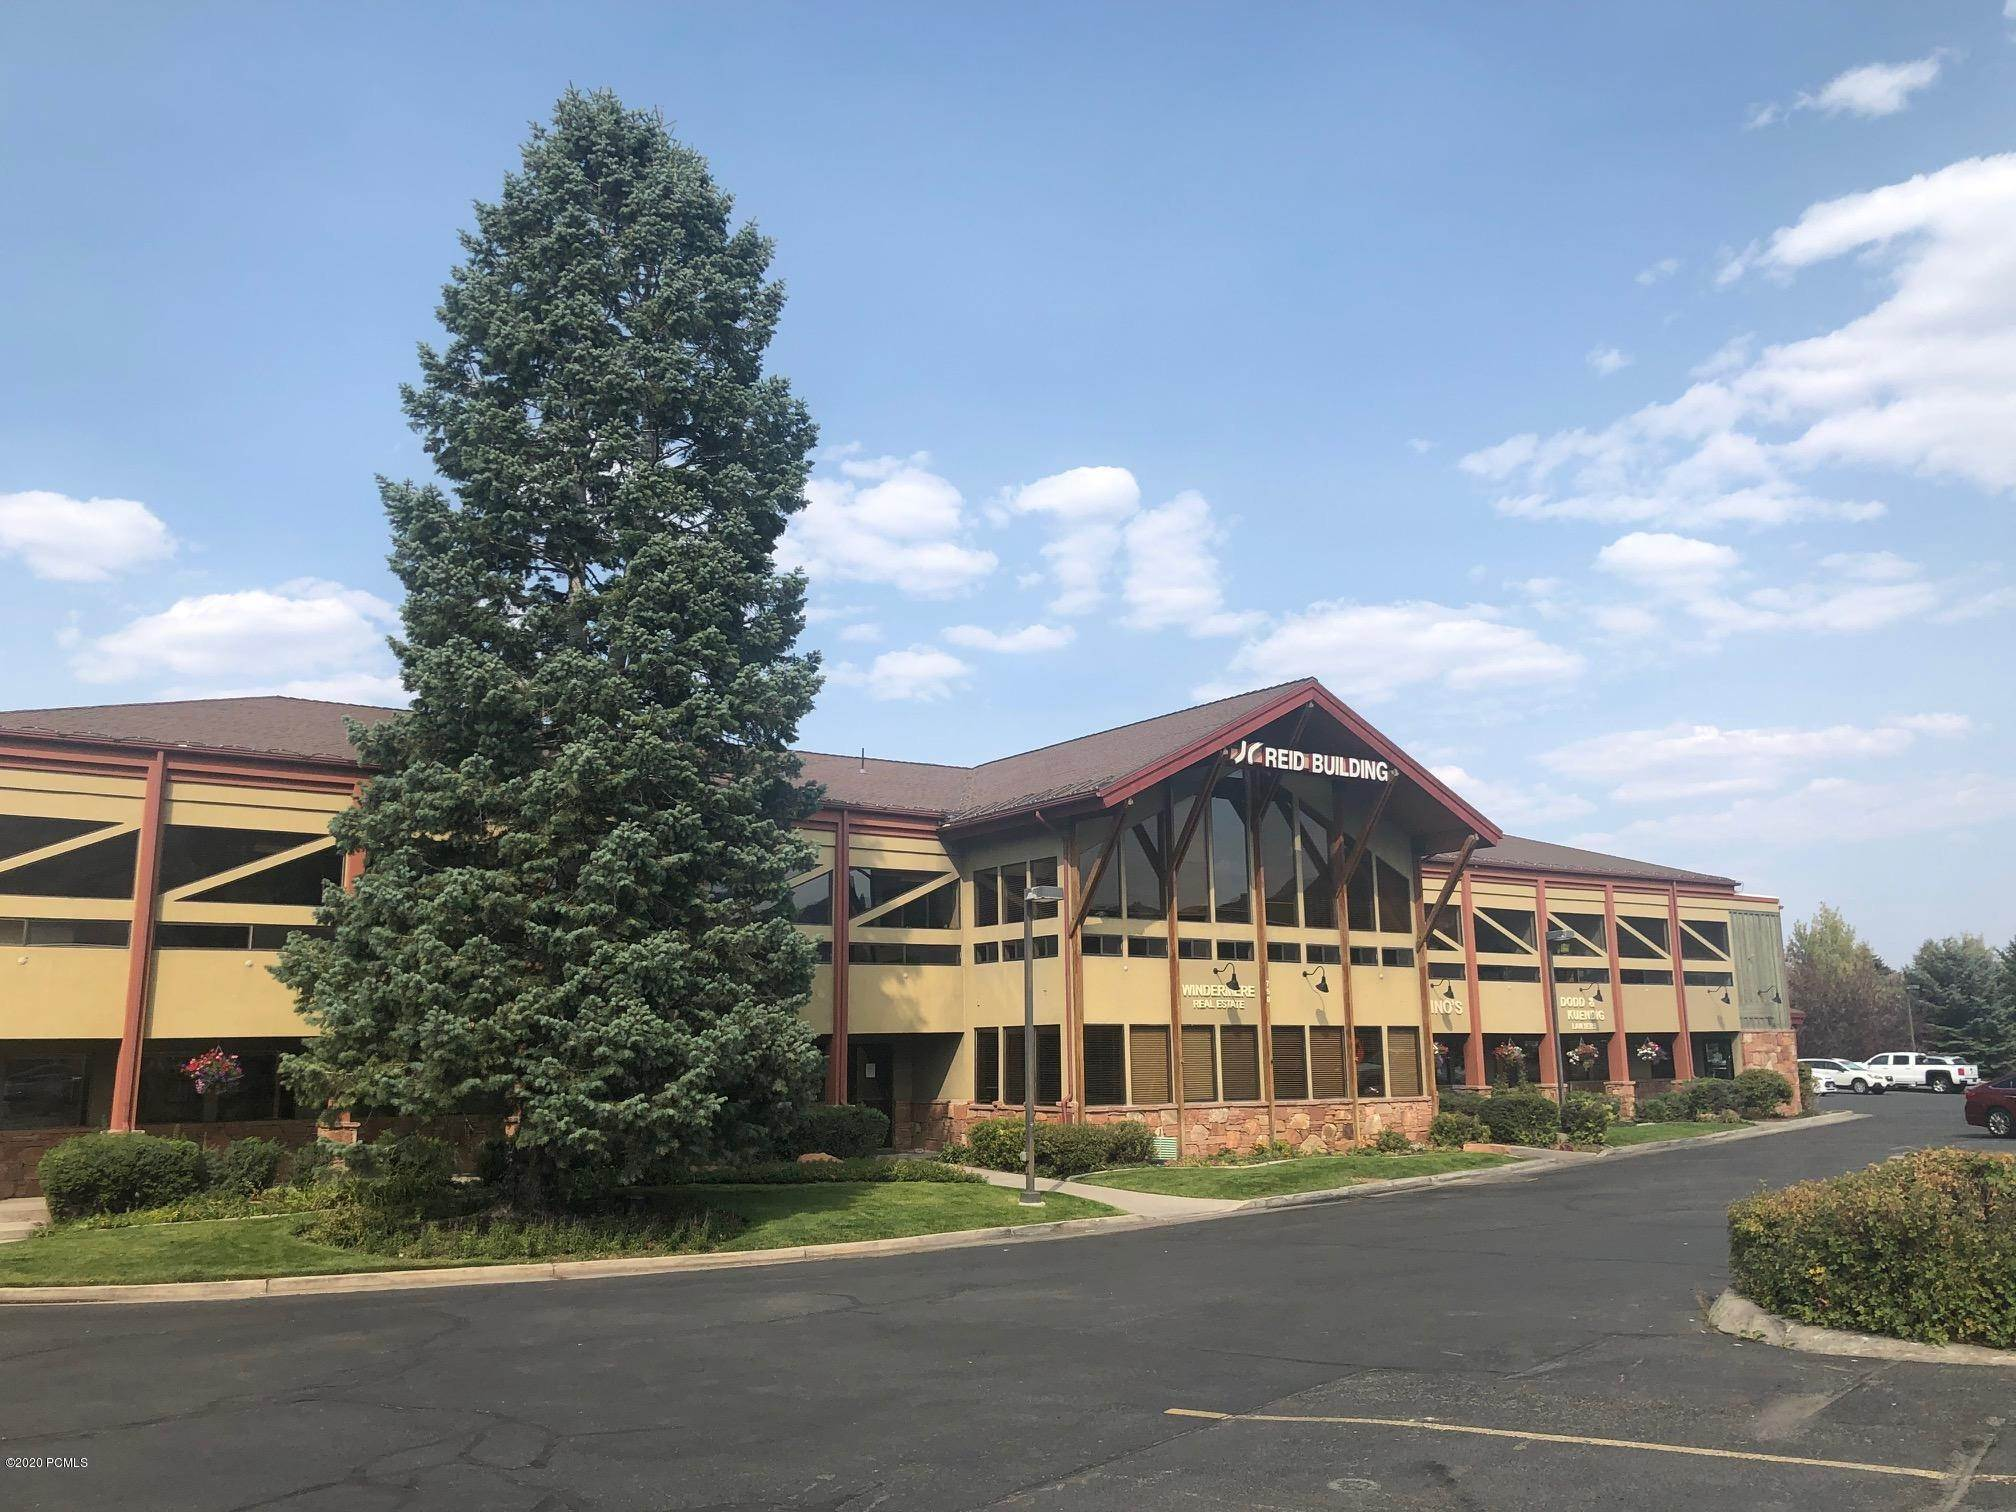 Comm / Ind Lease at 750 Kearns Boulevard Park City, Utah 84060 United States